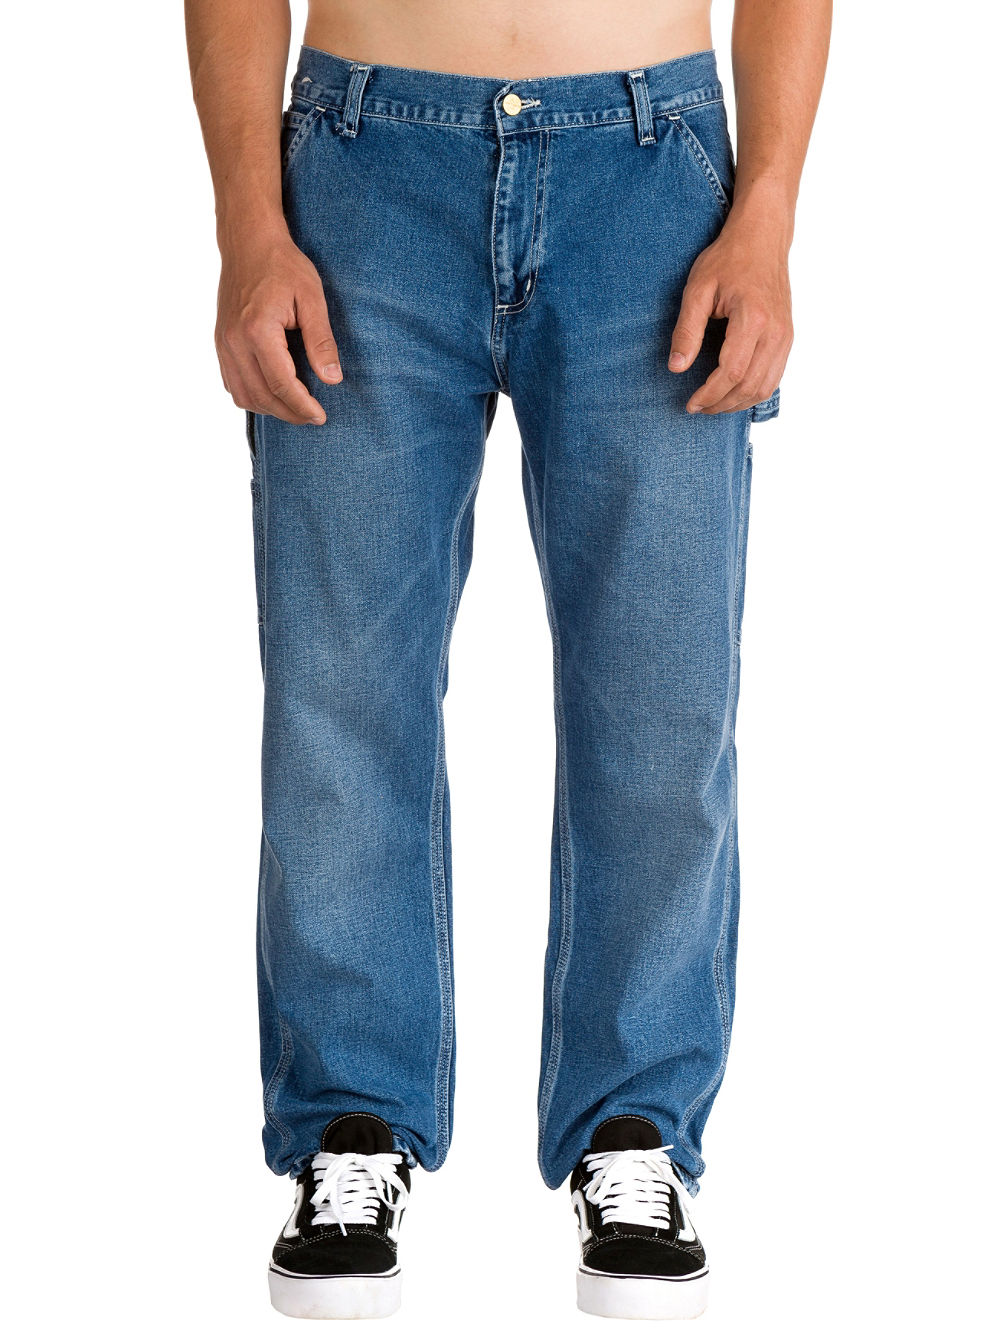 Ruck Single Knee Jeans